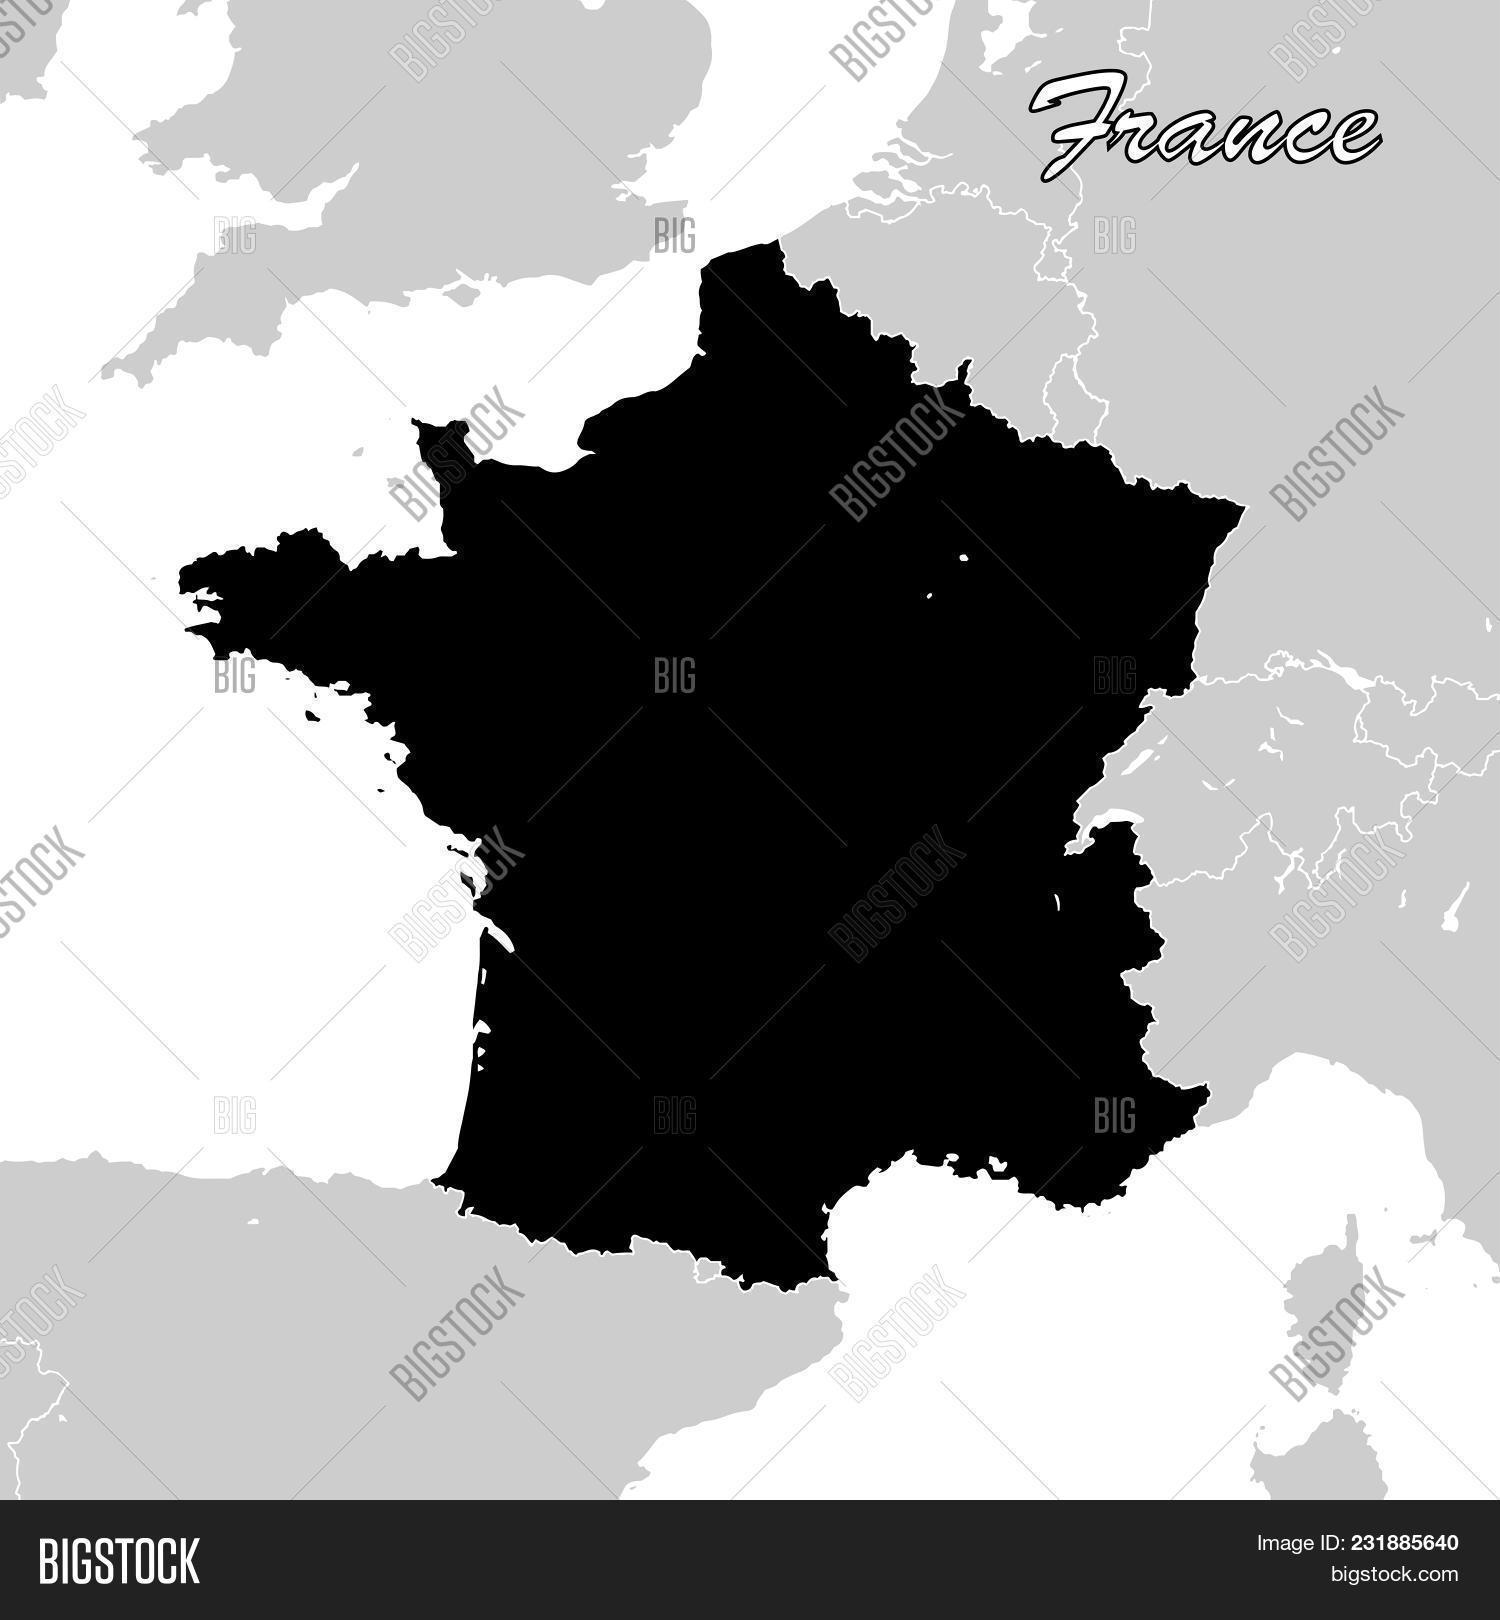 Image of: France Political Vector Photo Free Trial Bigstock